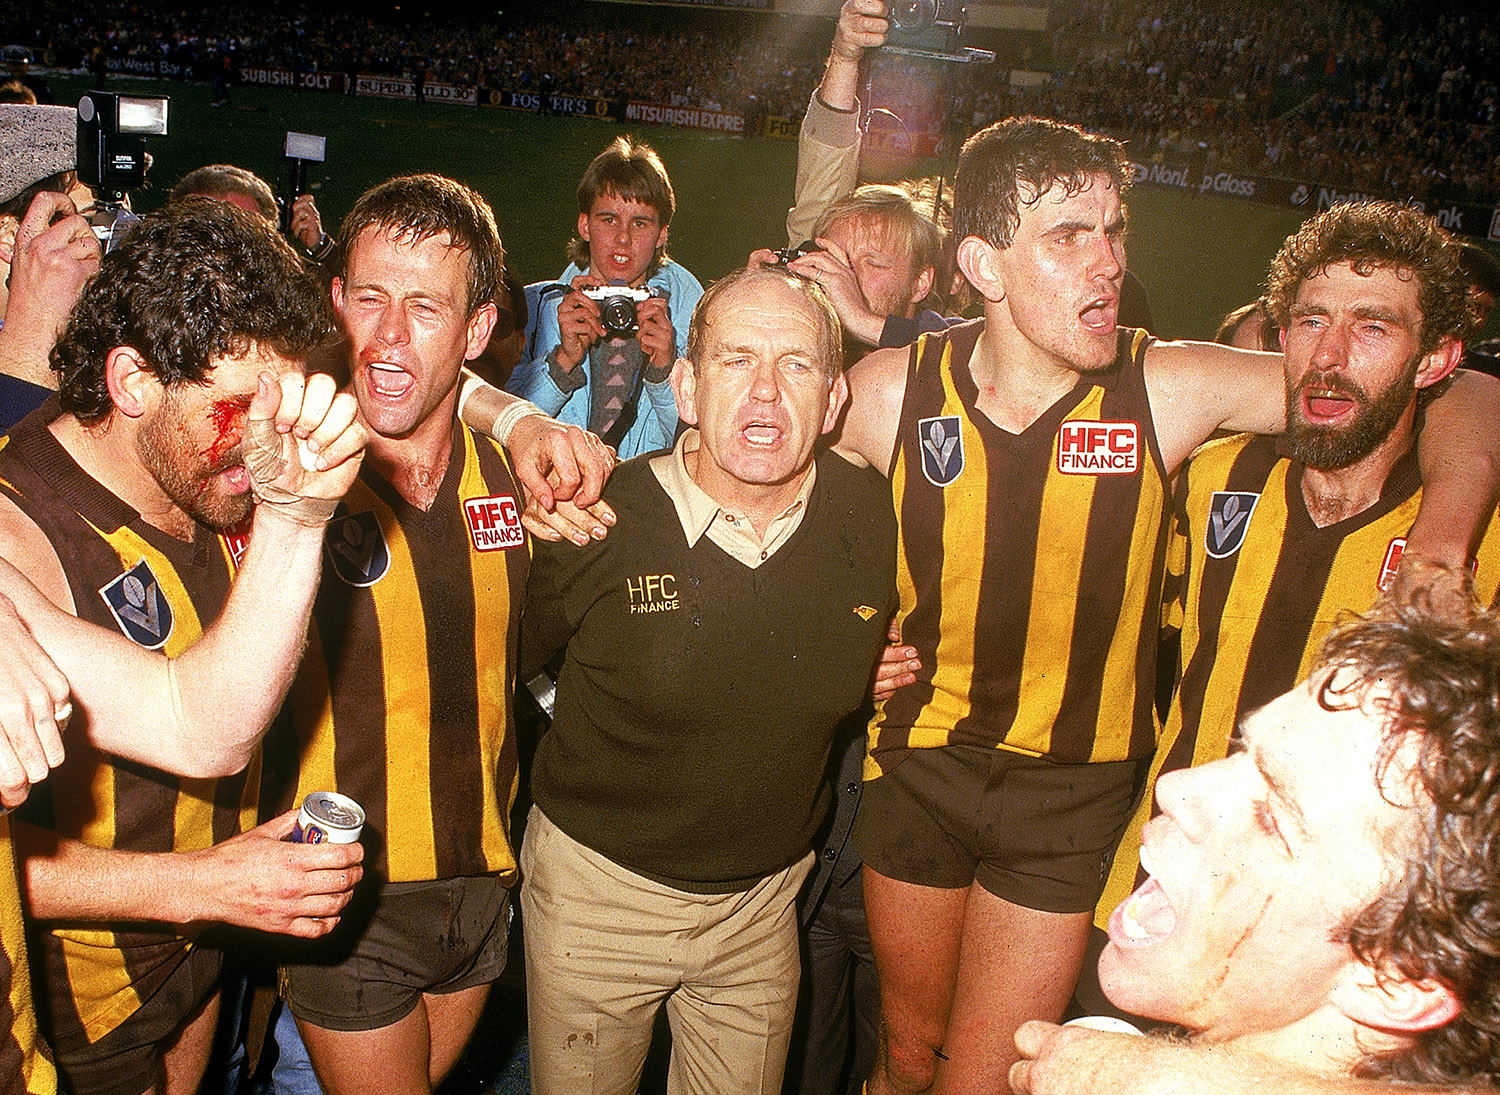 Allan Jeans with his Hawk Sausages. Pic: Getty Images